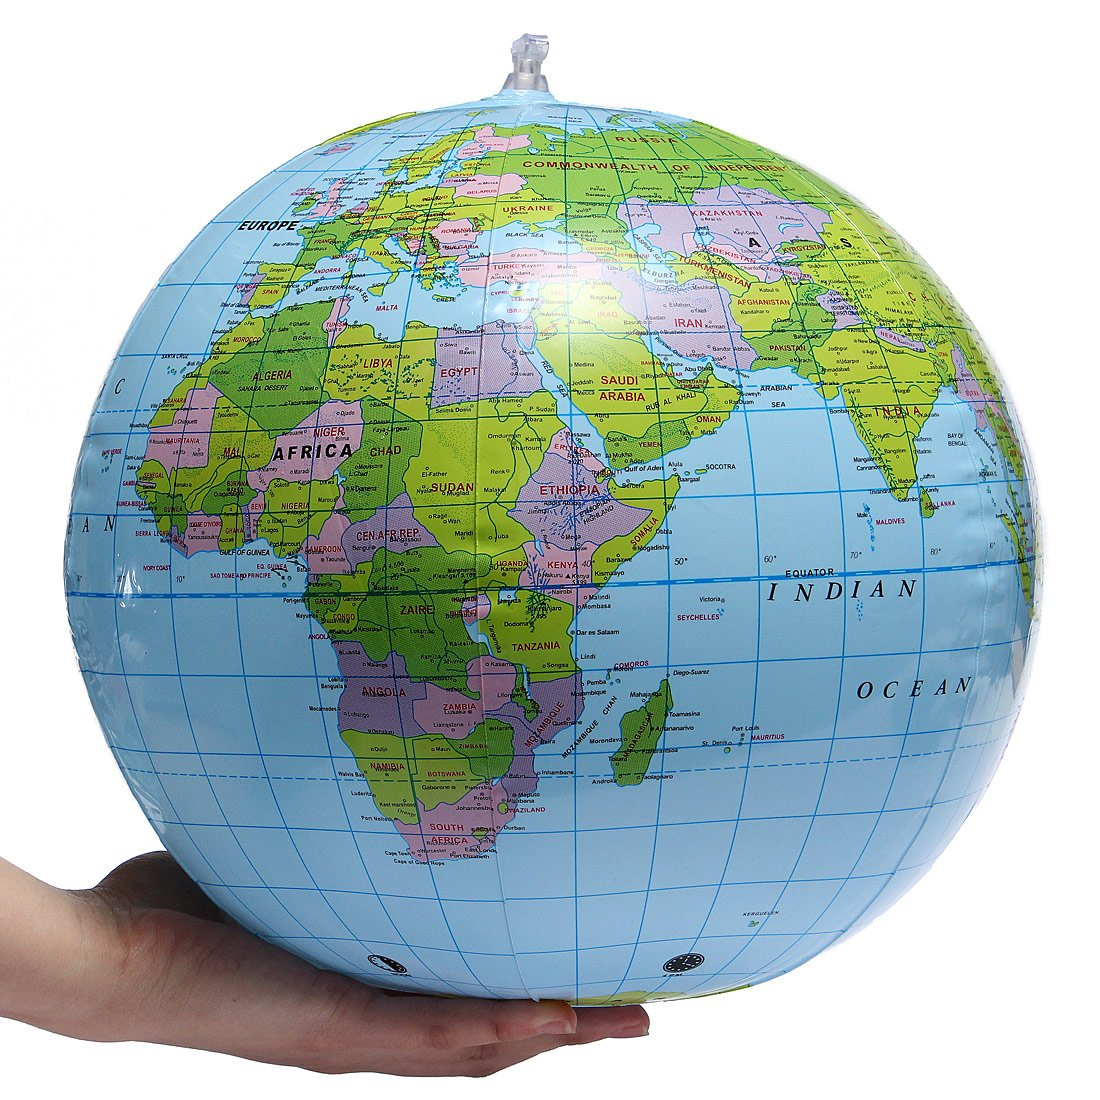 inflatable world globe earth map geography teacher aid ball toy gift 38cm15 amazoncouk toys games